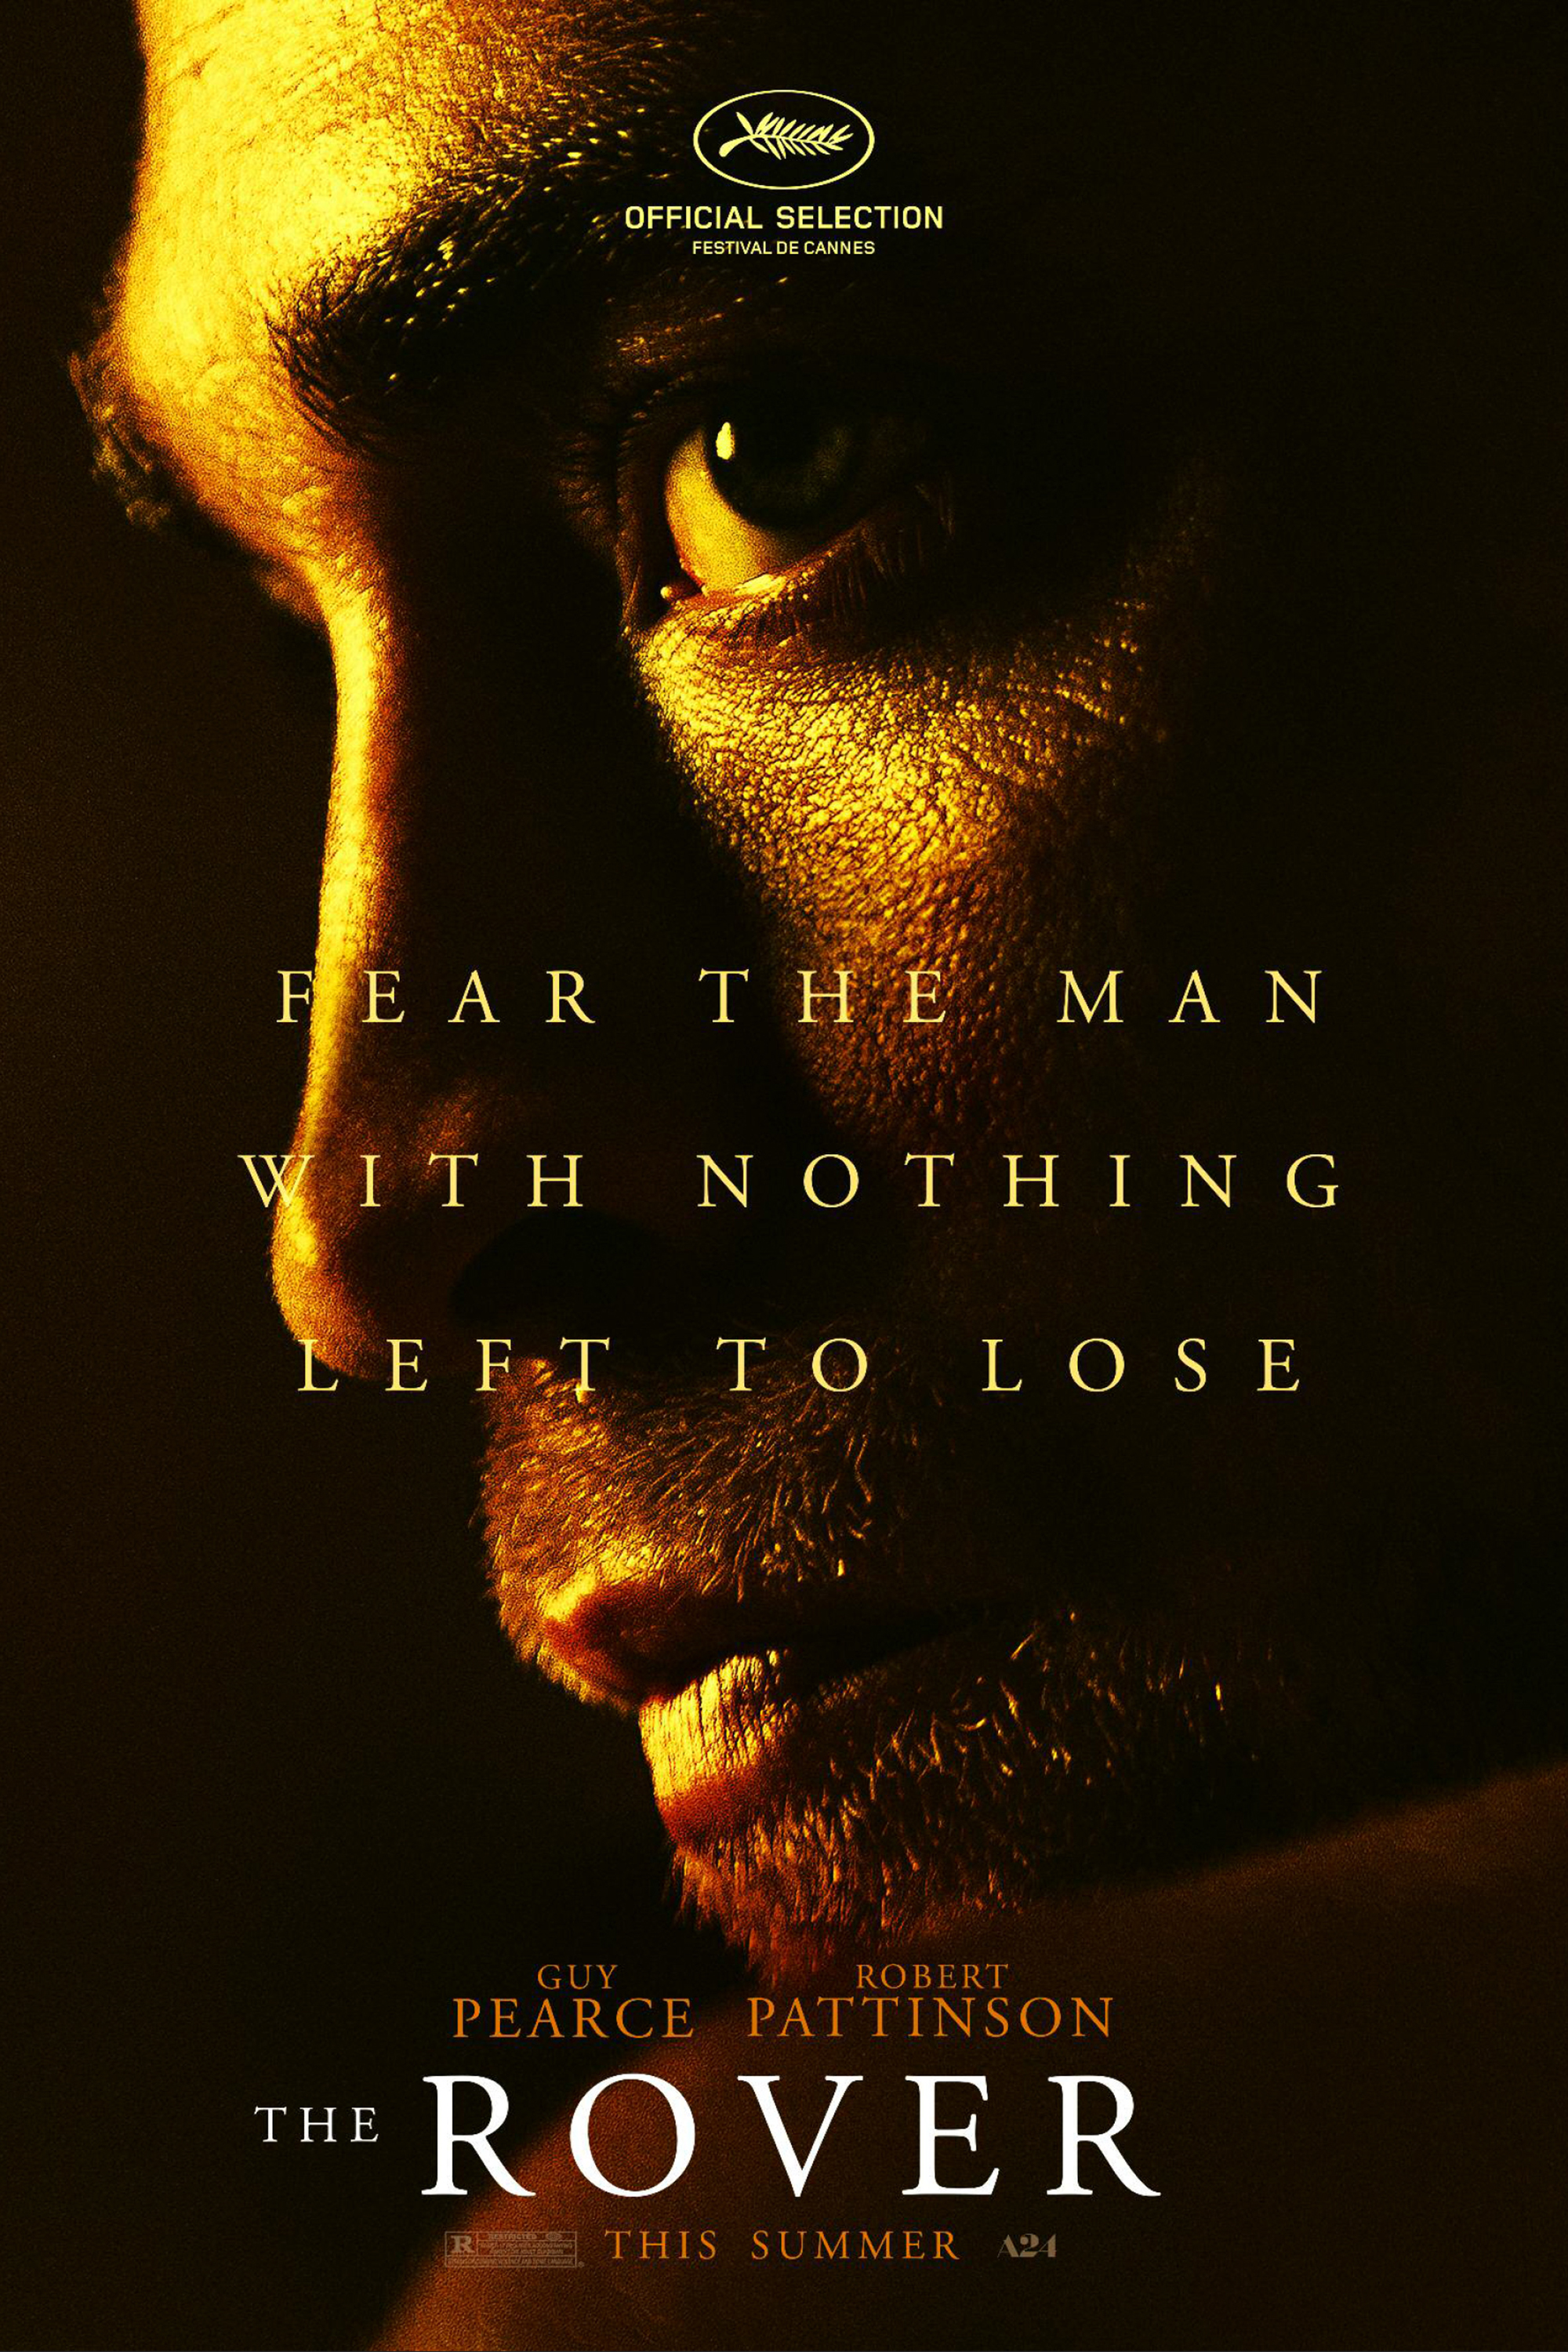 ROBERT PATTINSON  - THE ROVER